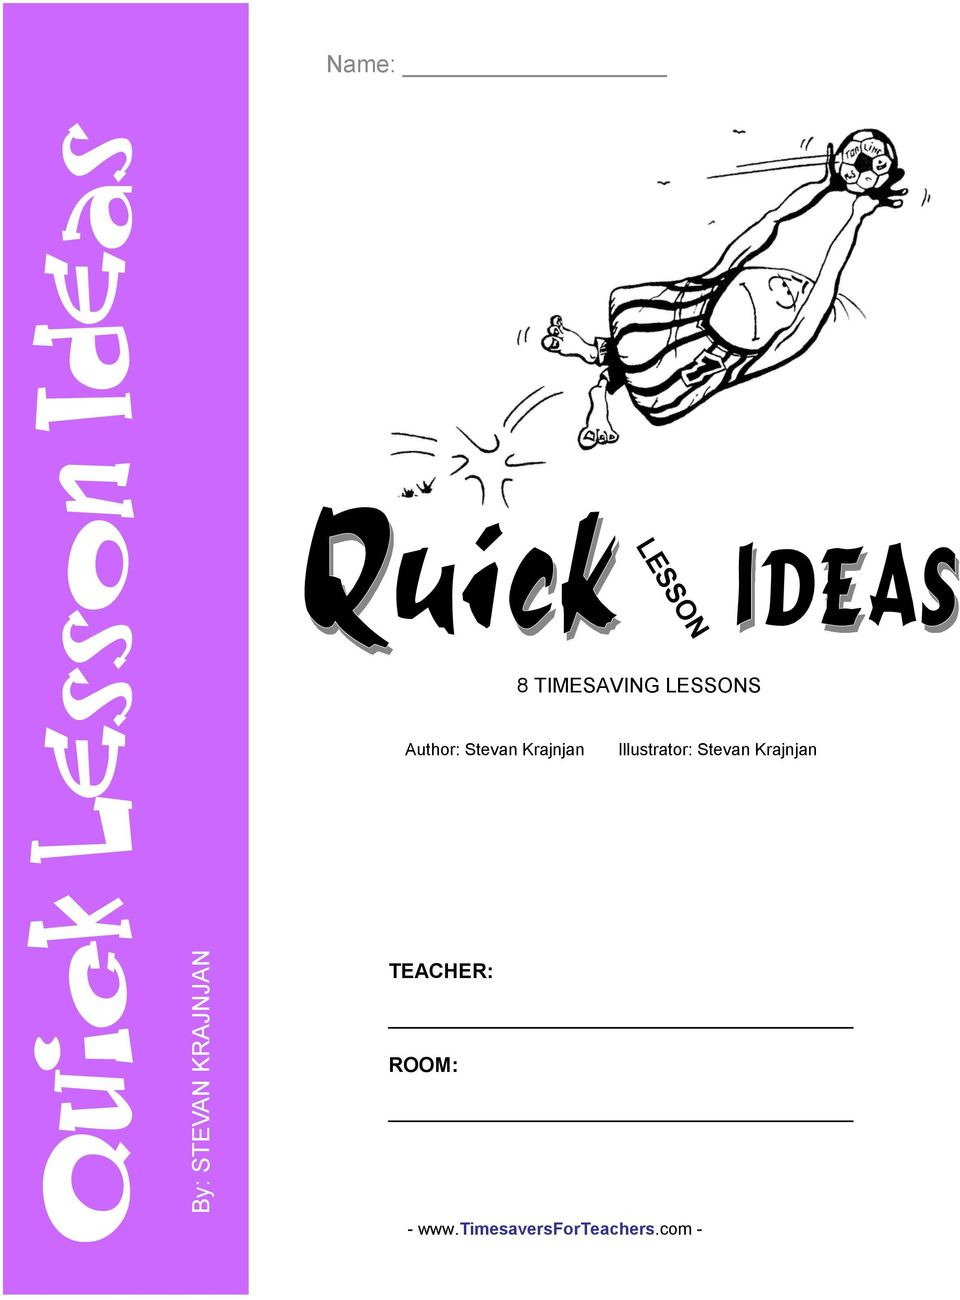 Author: Stevan Krajnjan Illustrator: Stevan